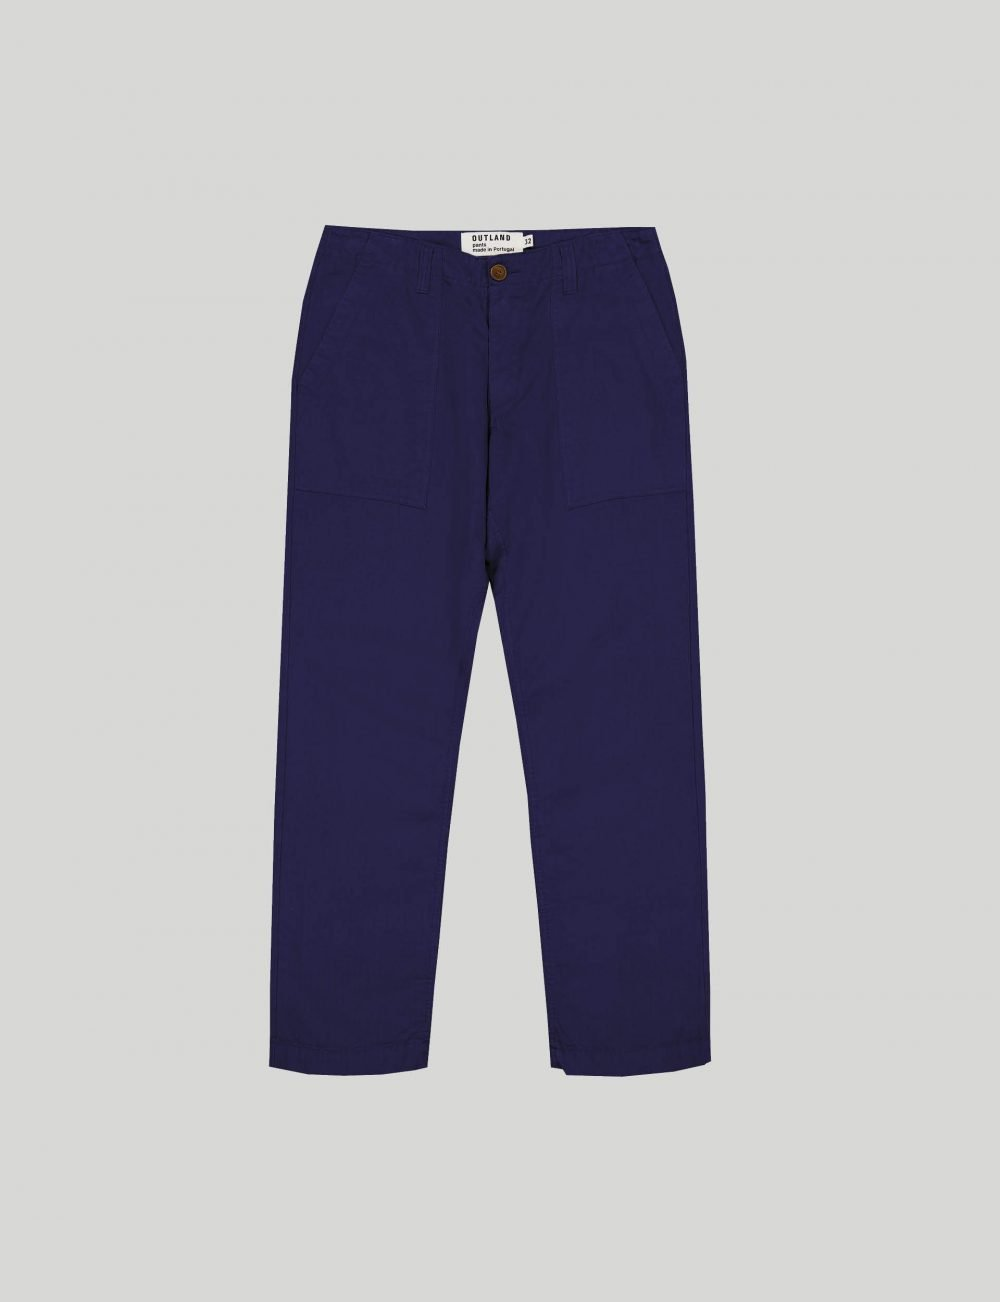 Outland - Castart - Fatigue Rip Trouser - Indigo